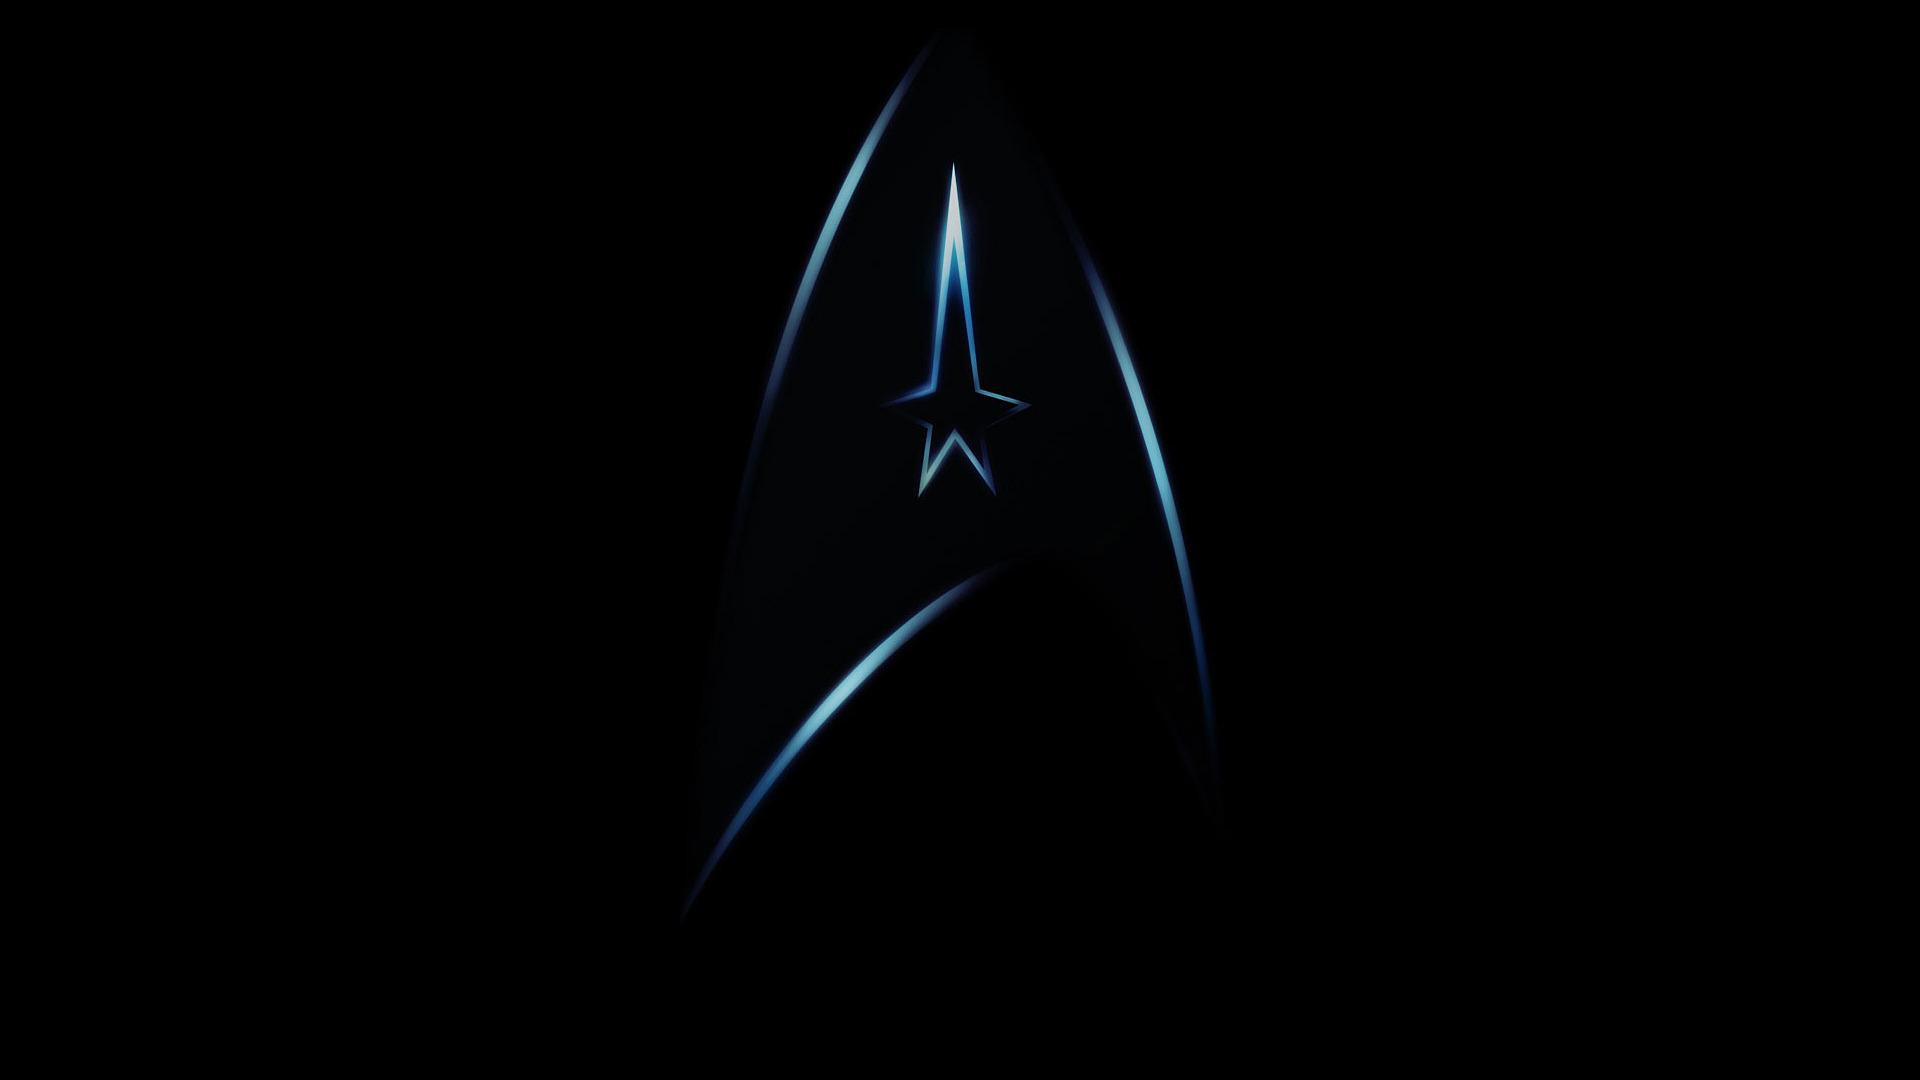 Star Trek Emblem Wallpaper